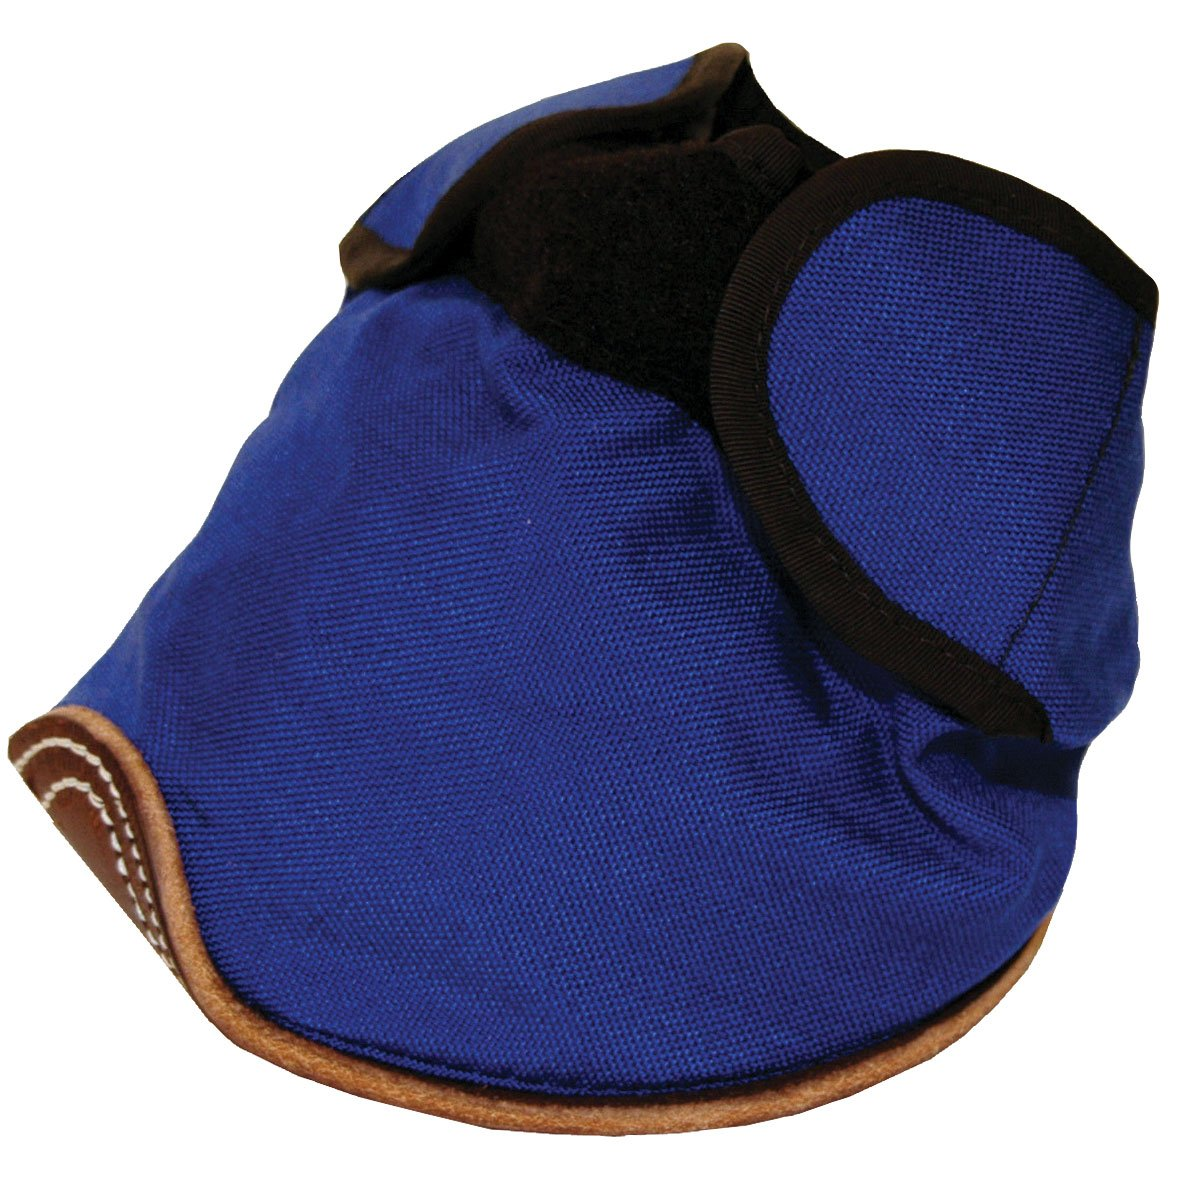 Deluxe Equine Slipper in Large